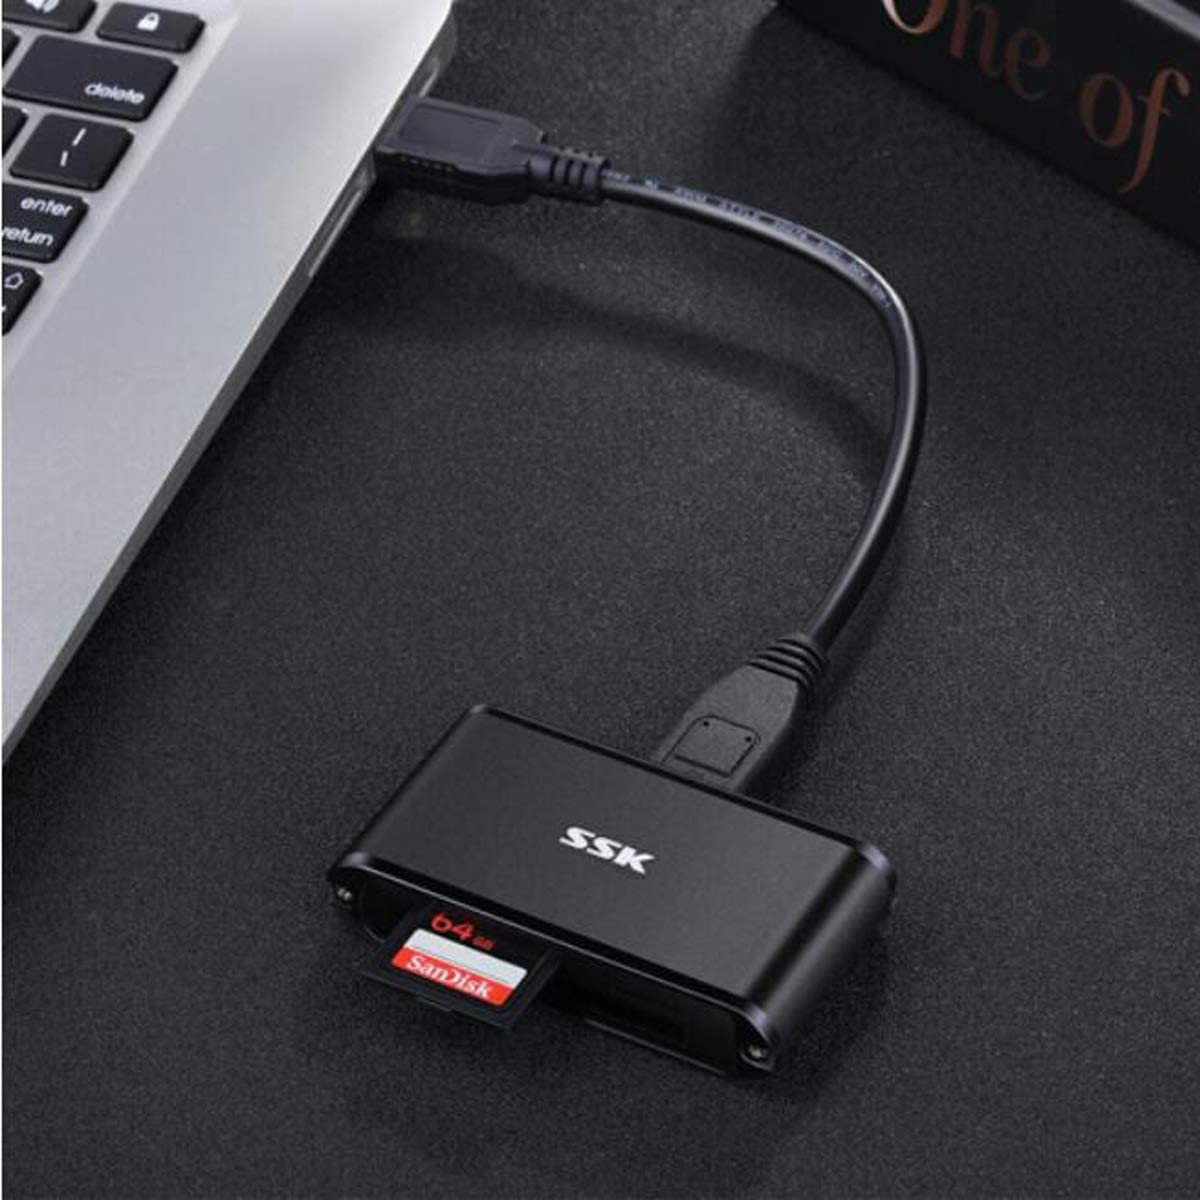 Aishanghuayi Card Reader USB3.0 High Speed Reading and Writing Color : Black Support TF//SD//CF Mobile Phone Card Camera Card